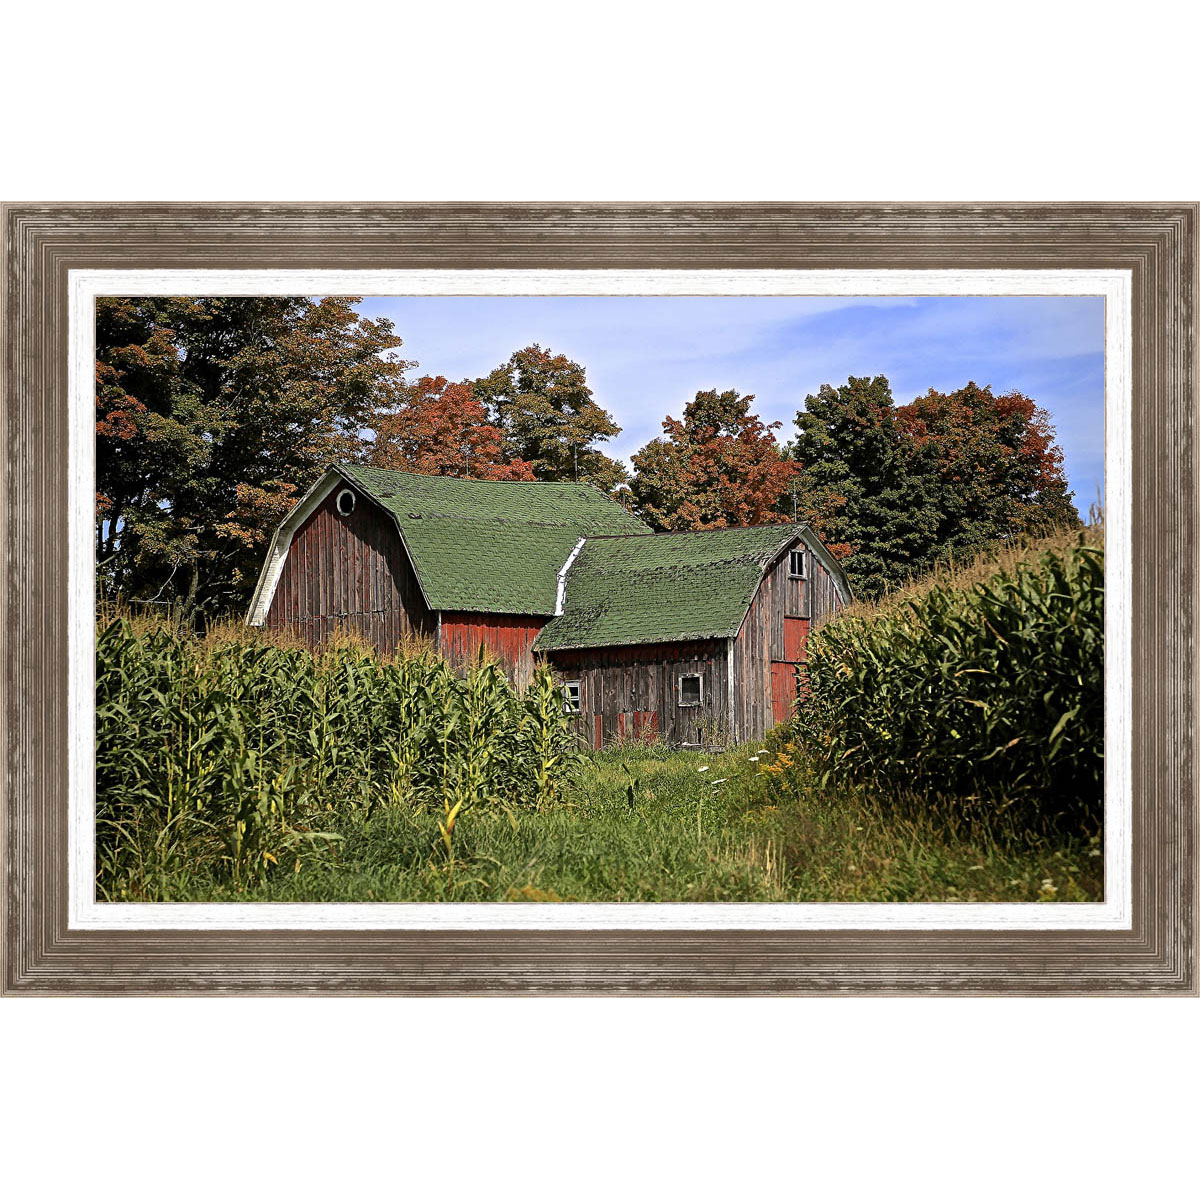 Barn with a Green Roof Framed Canvas